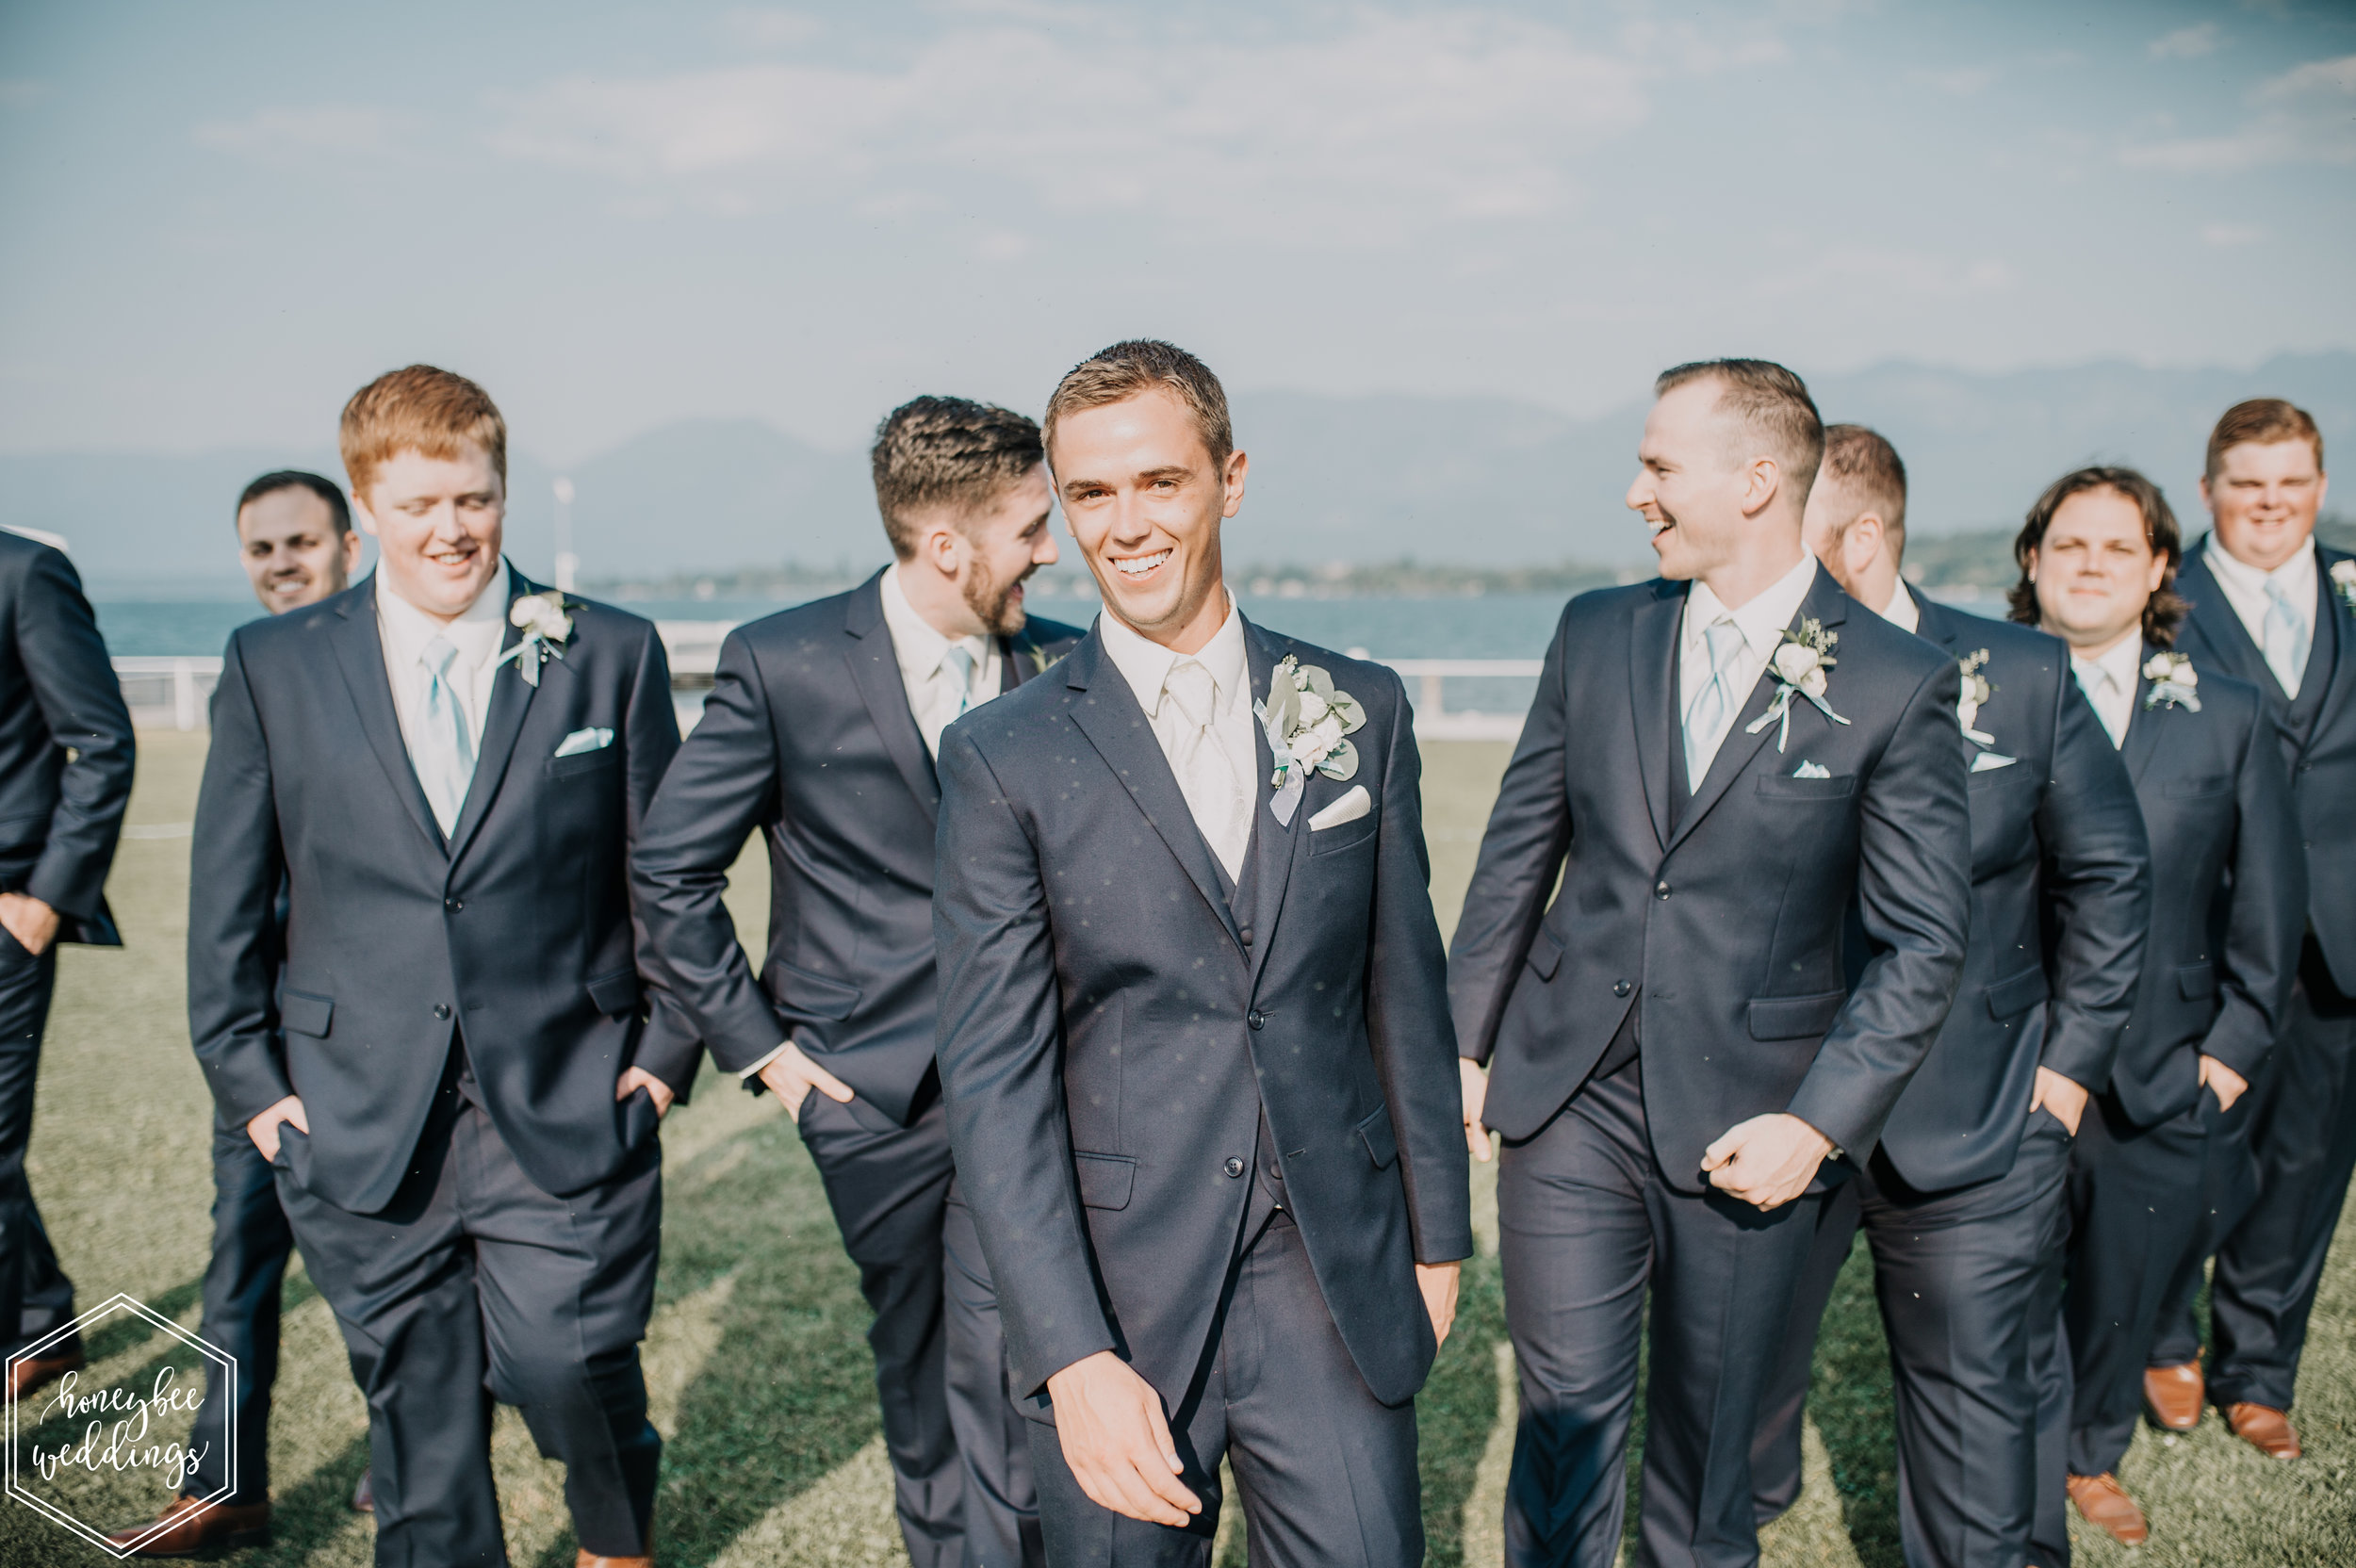 Kwatuqnuk Wedding_Montana Wedding Photographer_Katie White & Tommy Tosic_August 04, 2018-733.jpg